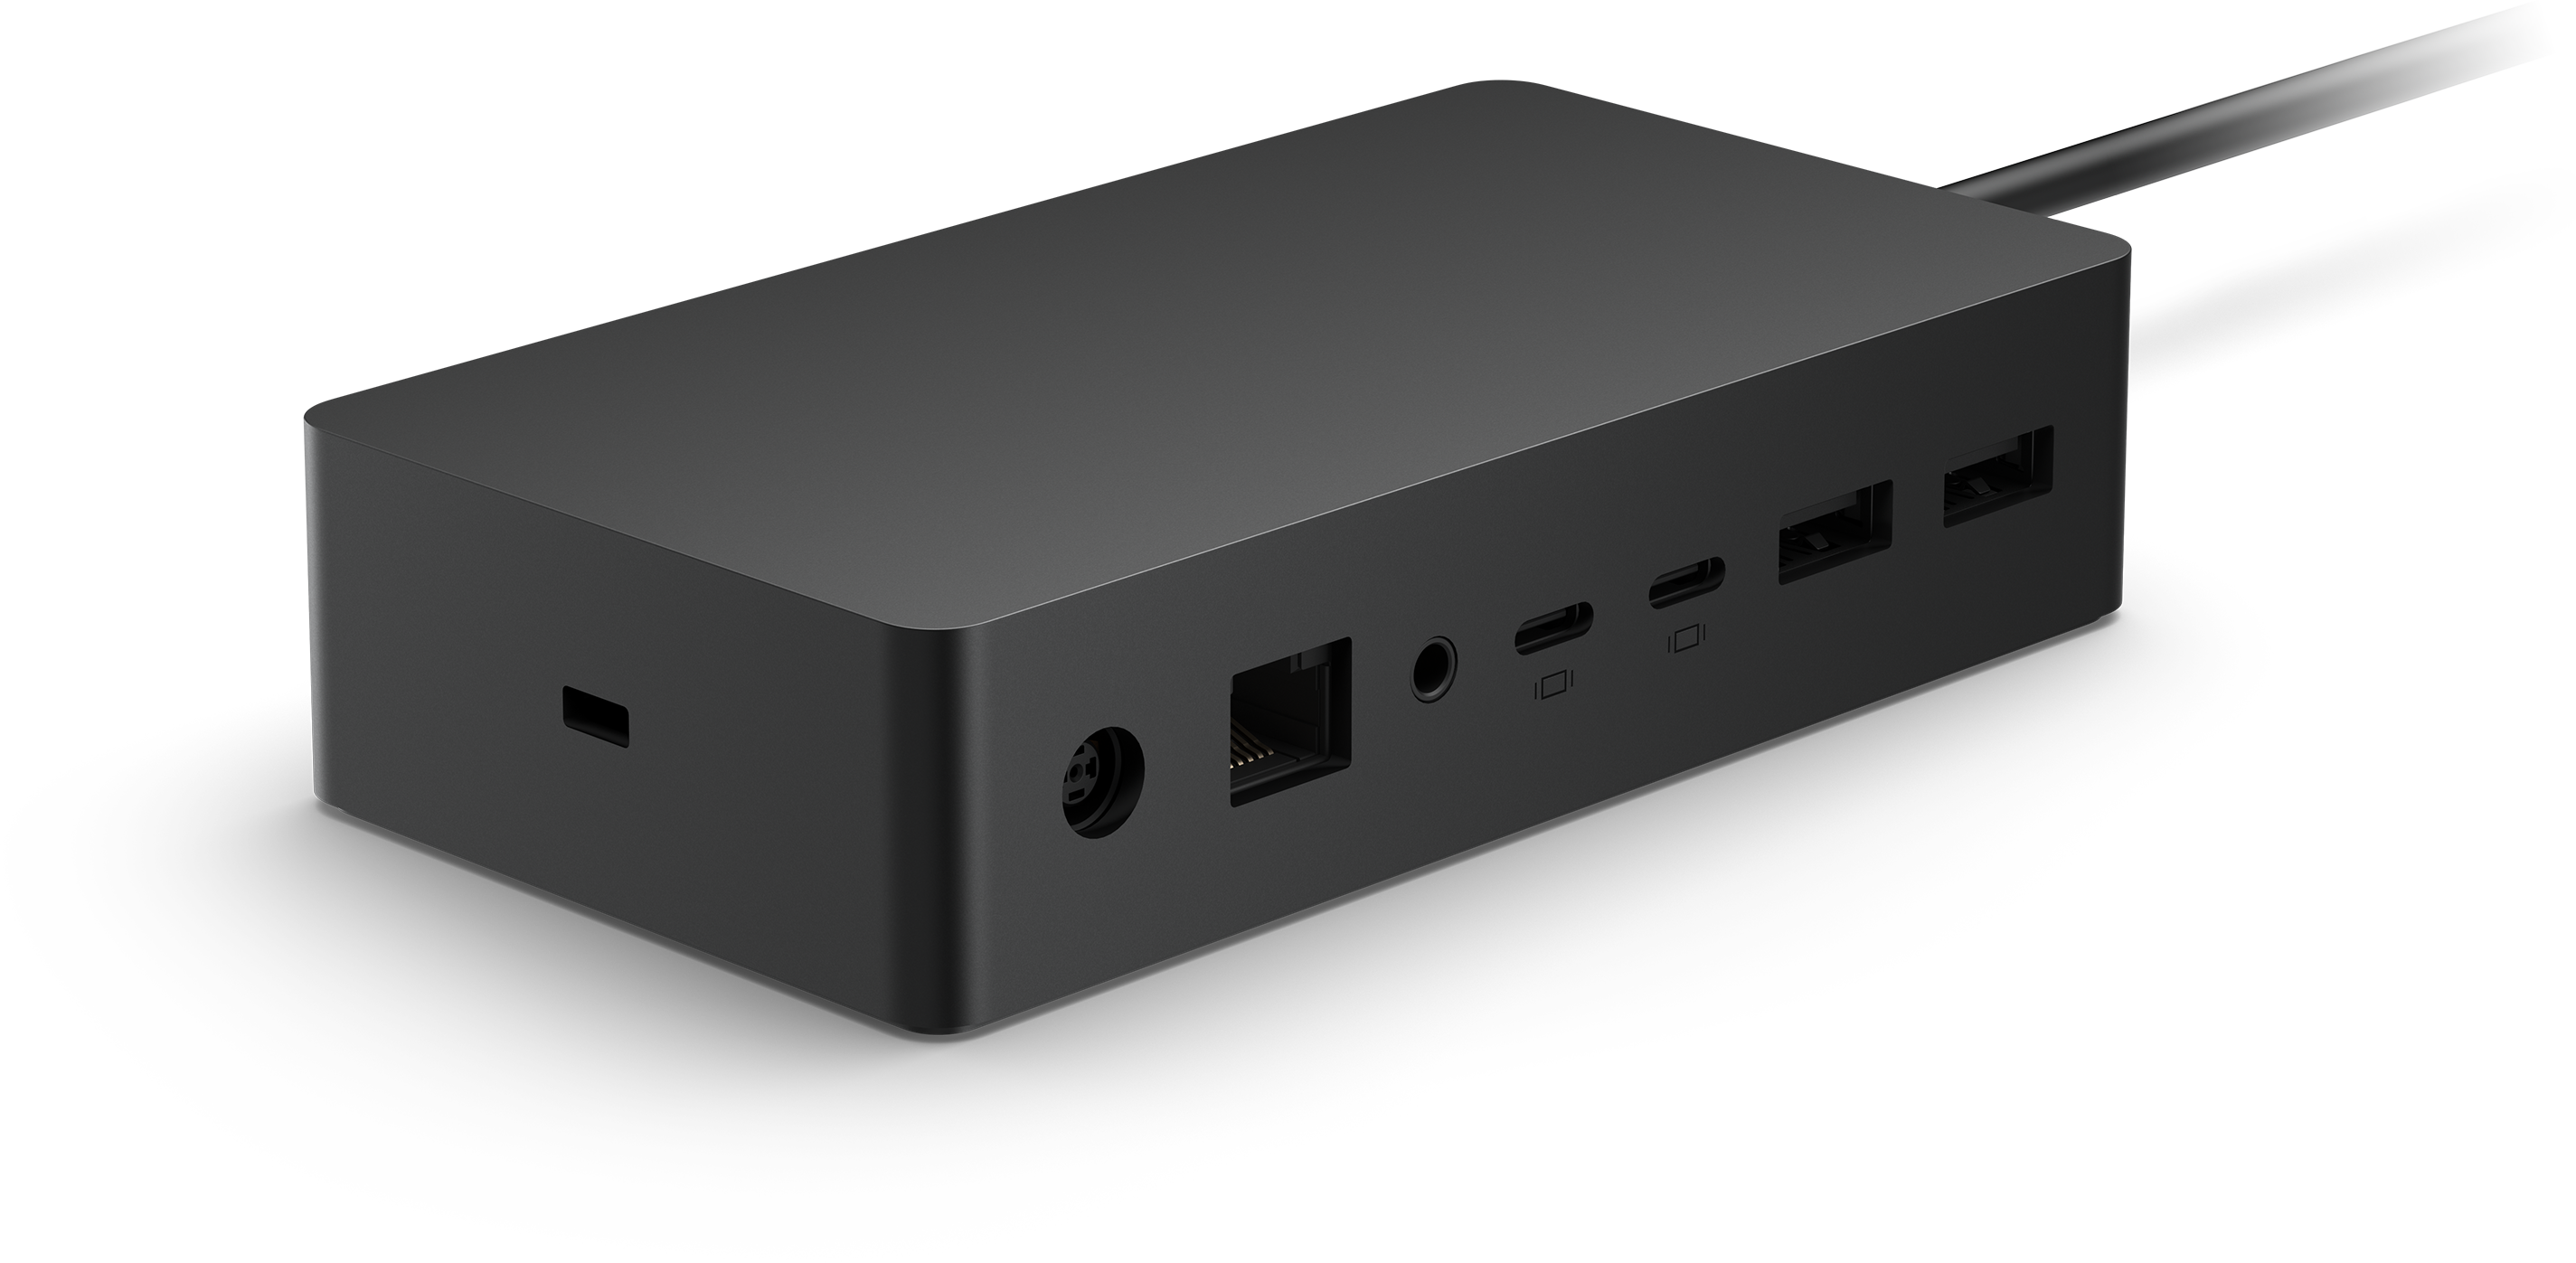 Surface Dock 2 Bring more power to your laptop. Surface Dock 2 transforms your Surface into a desktop PC, with a 199 W power supply to charge most Surface devices, plus USB-C®¹ ports that support dual 4K monitors at 60 Hz. Simply plug in the Surface Connect cable to charge your device and access external monitors, a keyboard, mouse, and more.